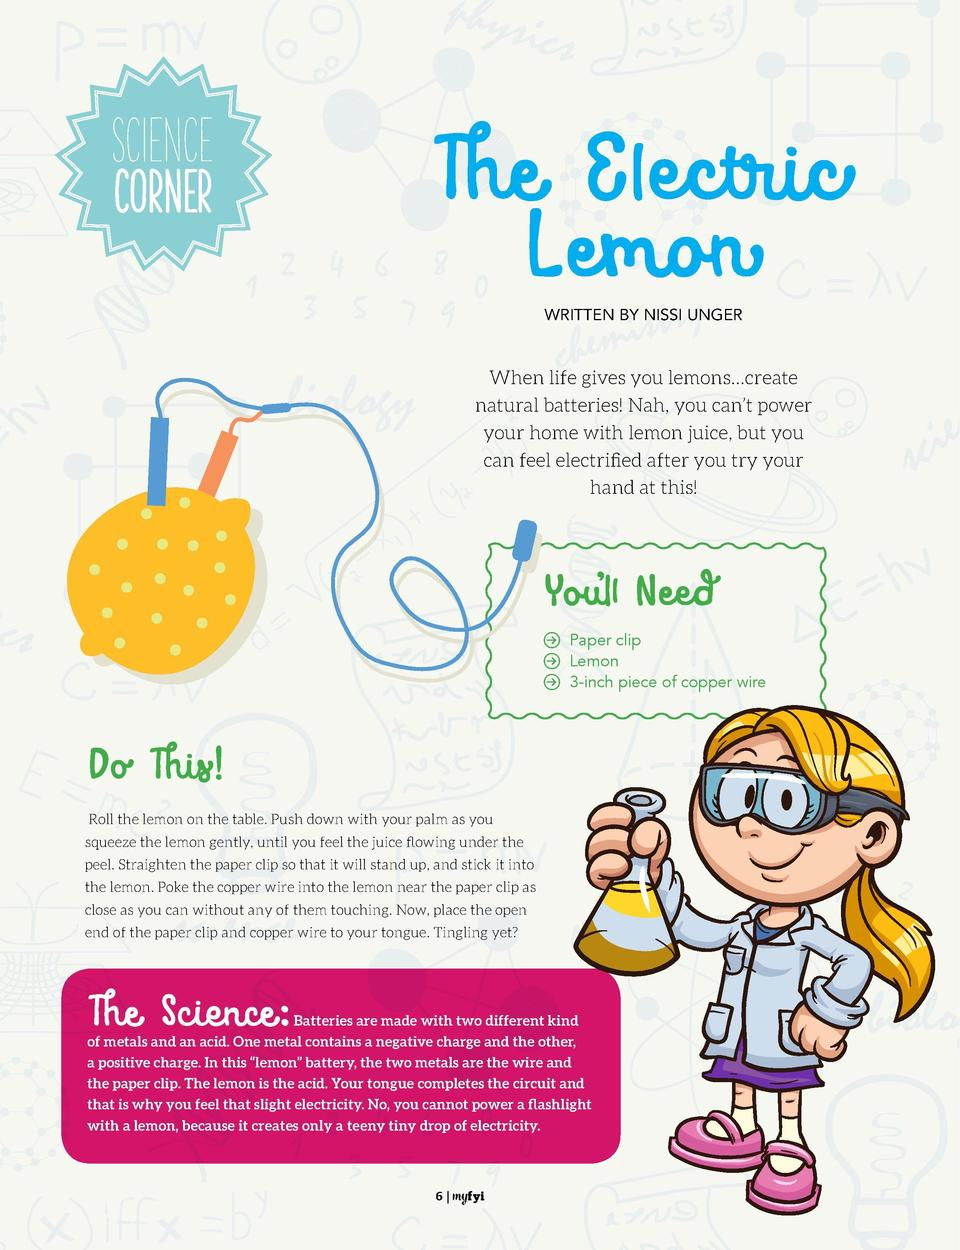 Science COrner  The Electric Lemon  Find It   Find the hidden objects in this Photos   It s Fun Stuff  WRITTEN BY NISSI UN...